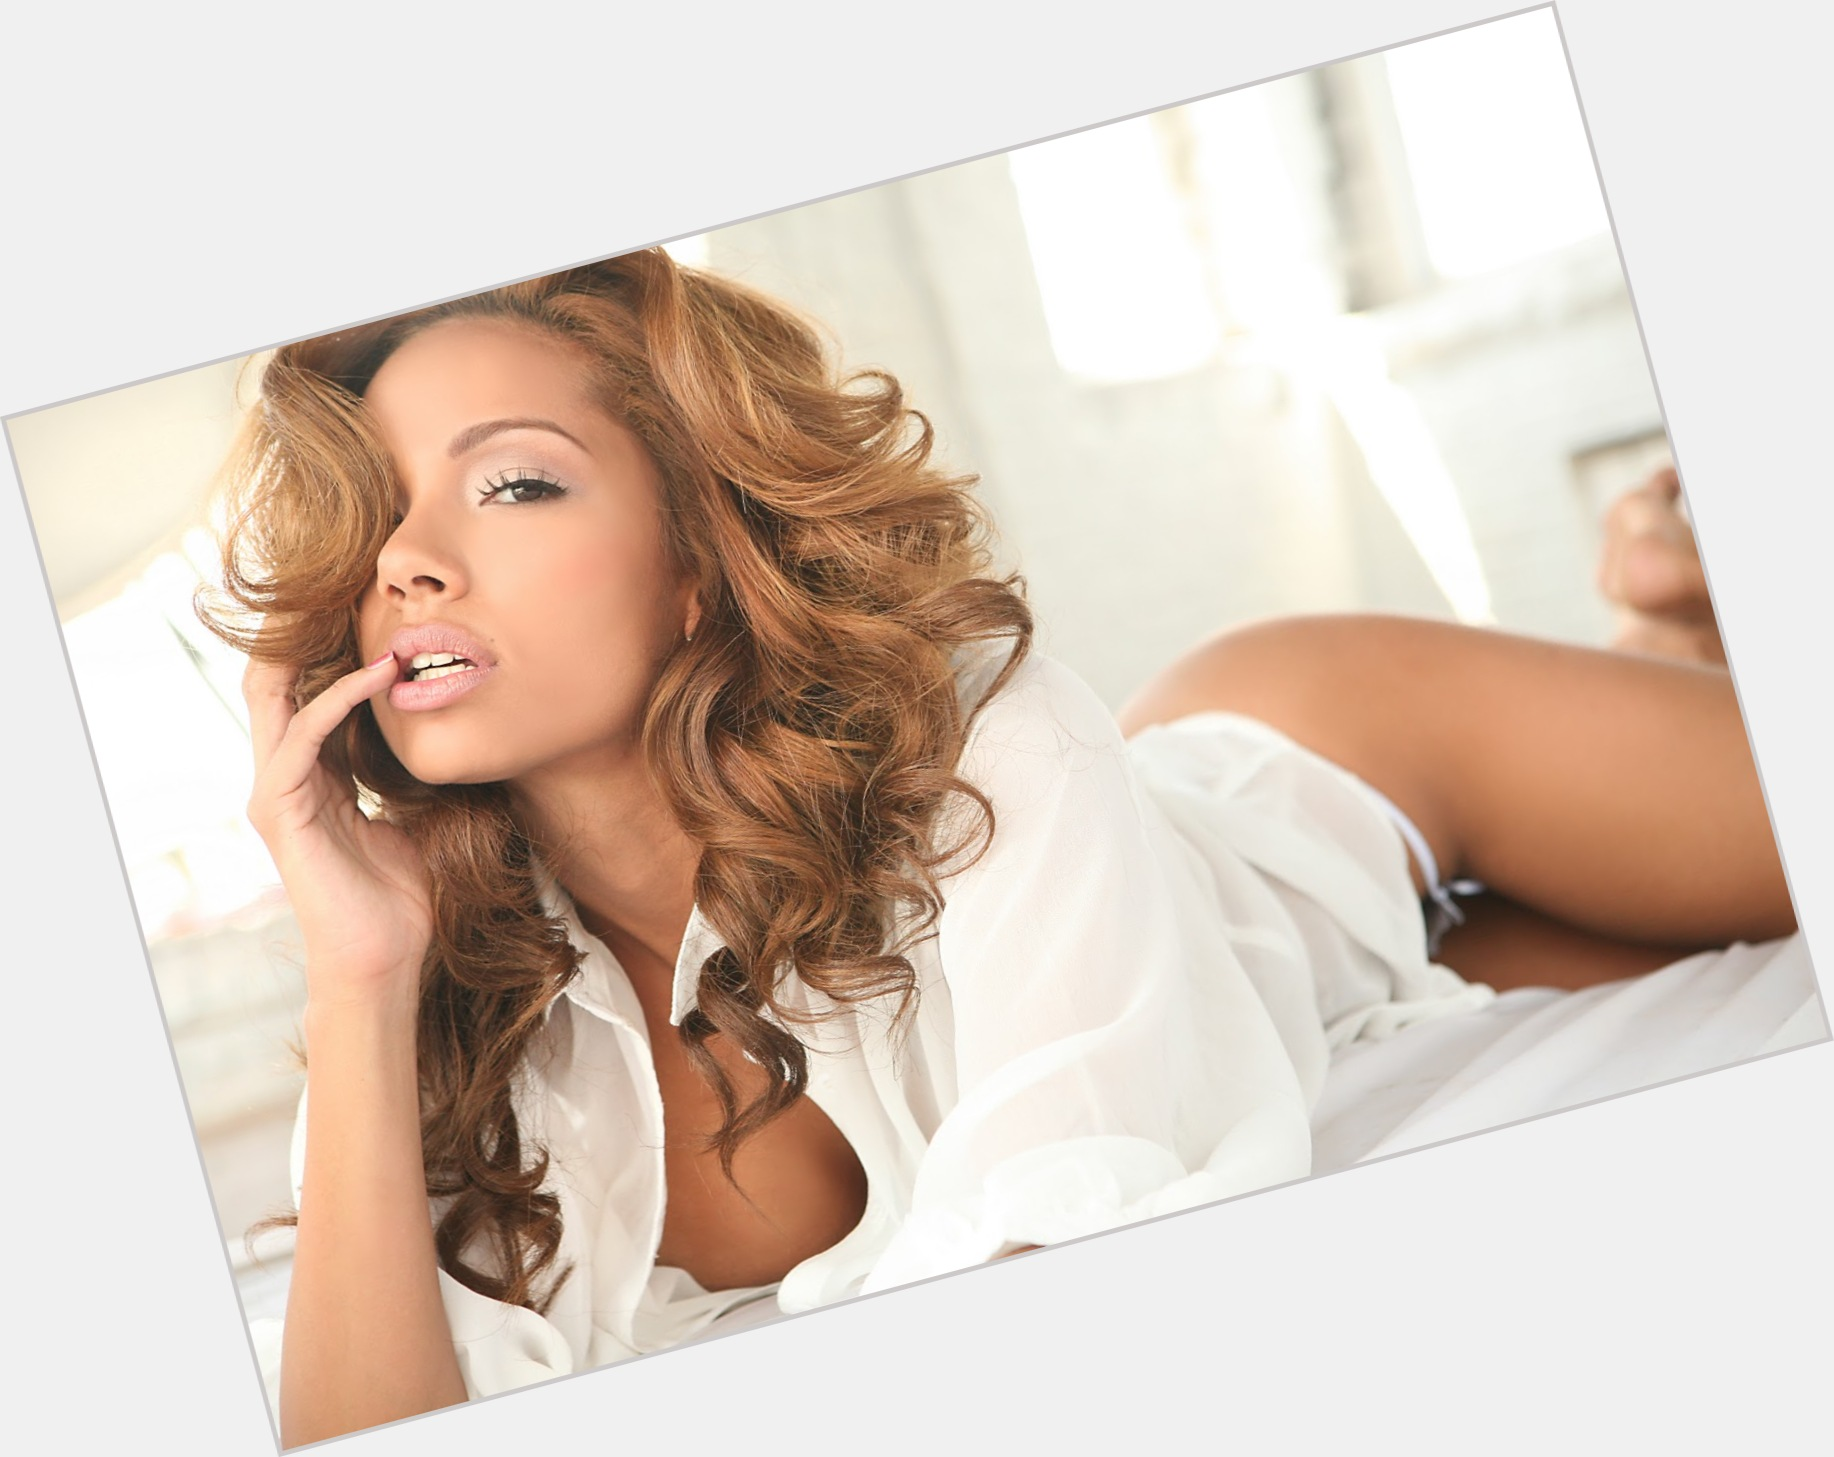 Erica Mena exclusive hot pic 5.jpg